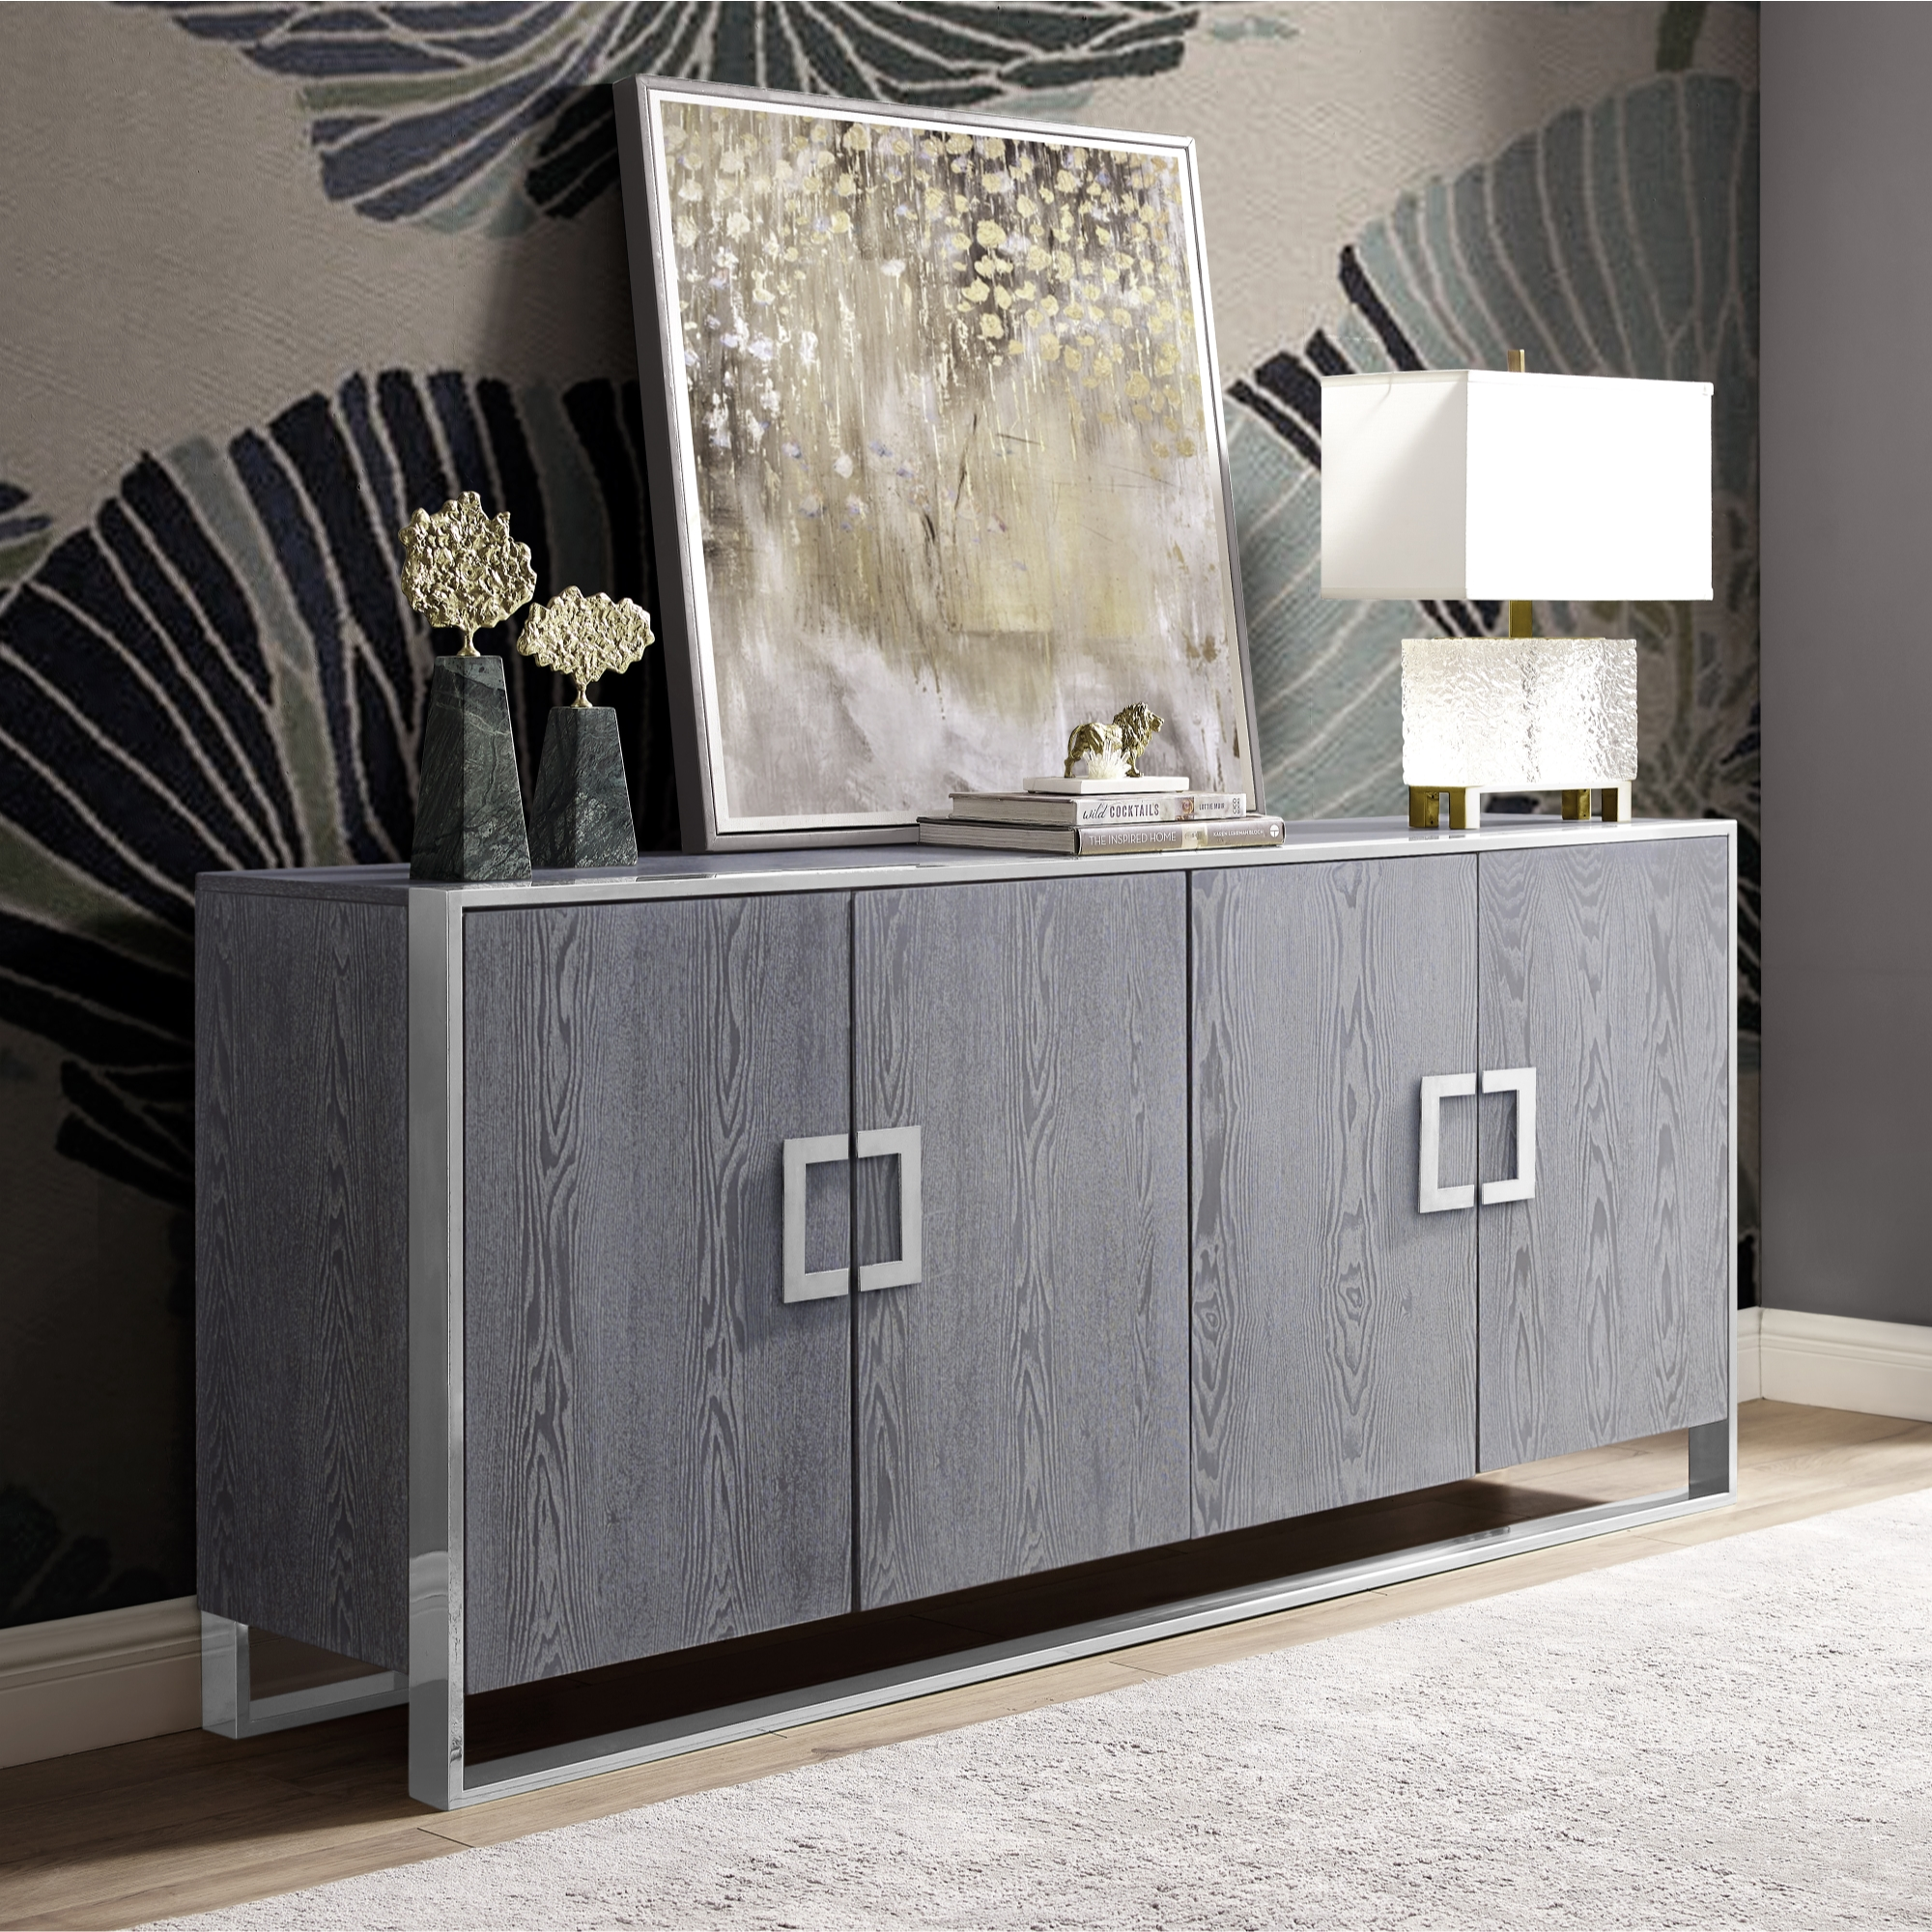 Inspired Home Ash Grey Sideboard 4 Doors Polished Chrome Handle and Leg Tip